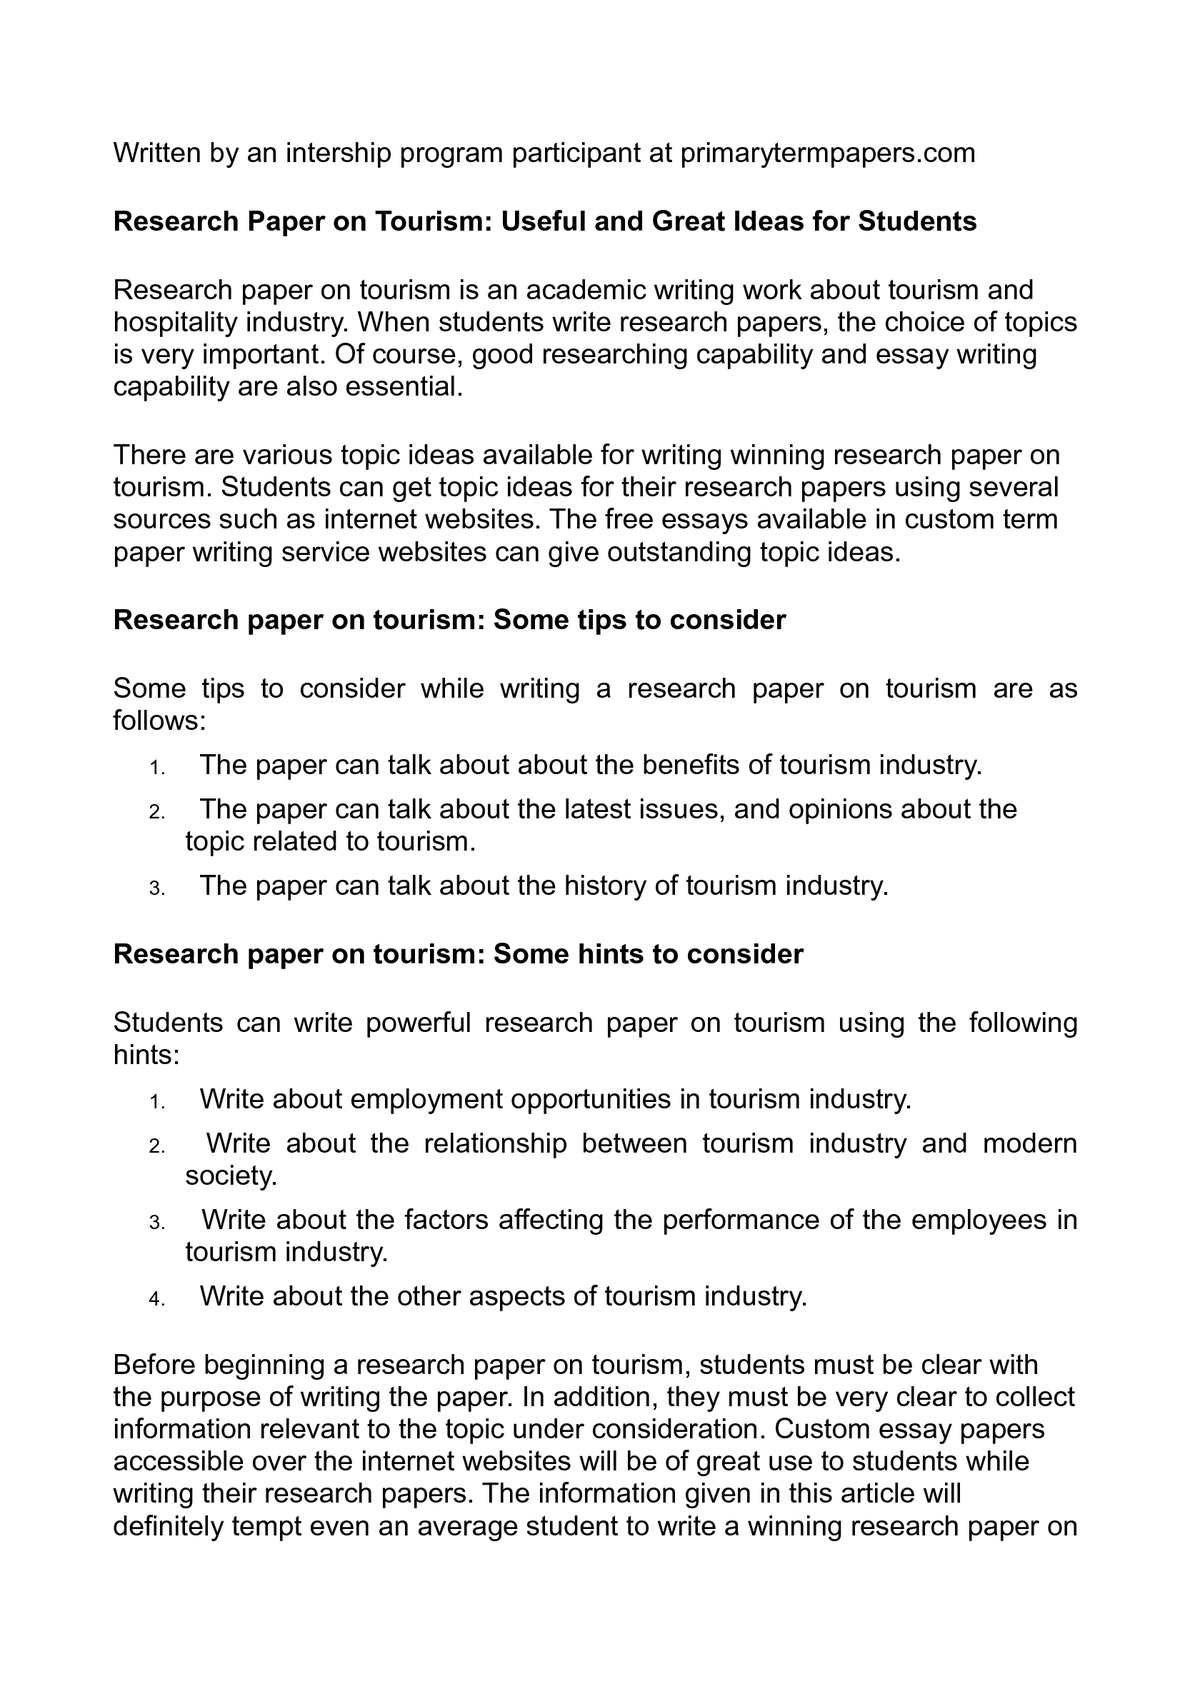 009 Research Paper Ideas For Fascinating Papers In Computer Science Middle School Topic High Full